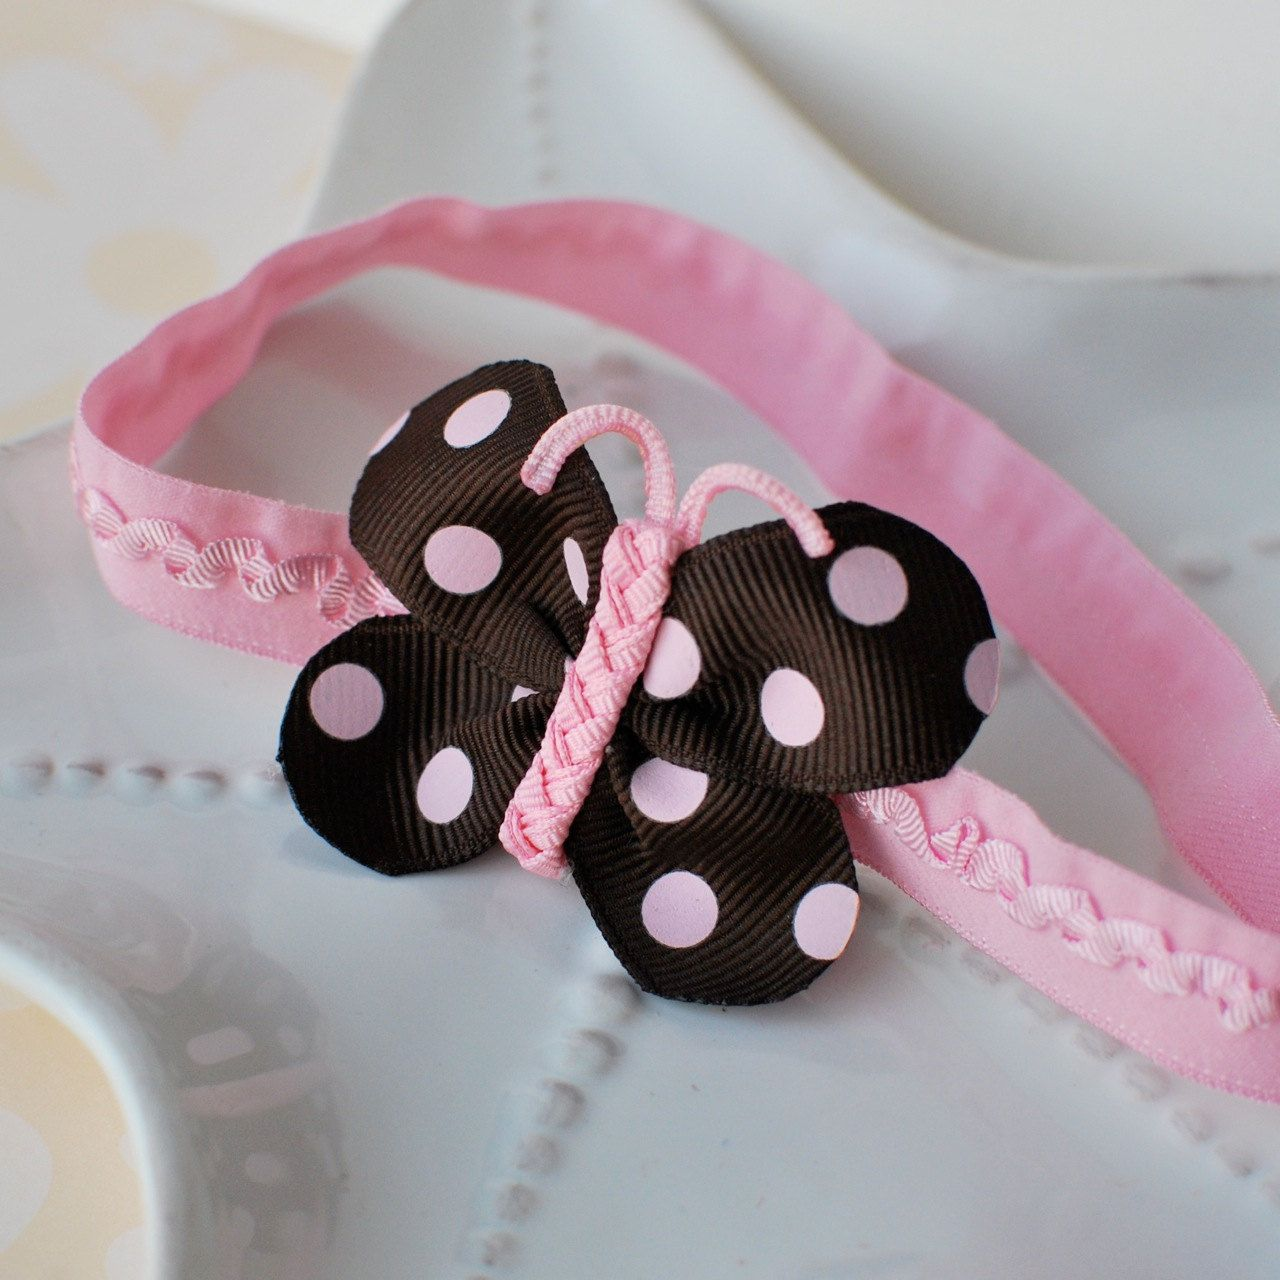 Pink And Brown Baby Gifts Drbrowns Wide Neck Gift Set Pp Bottle Wb933 Fall Headband Mylittlepixies 1280x1280